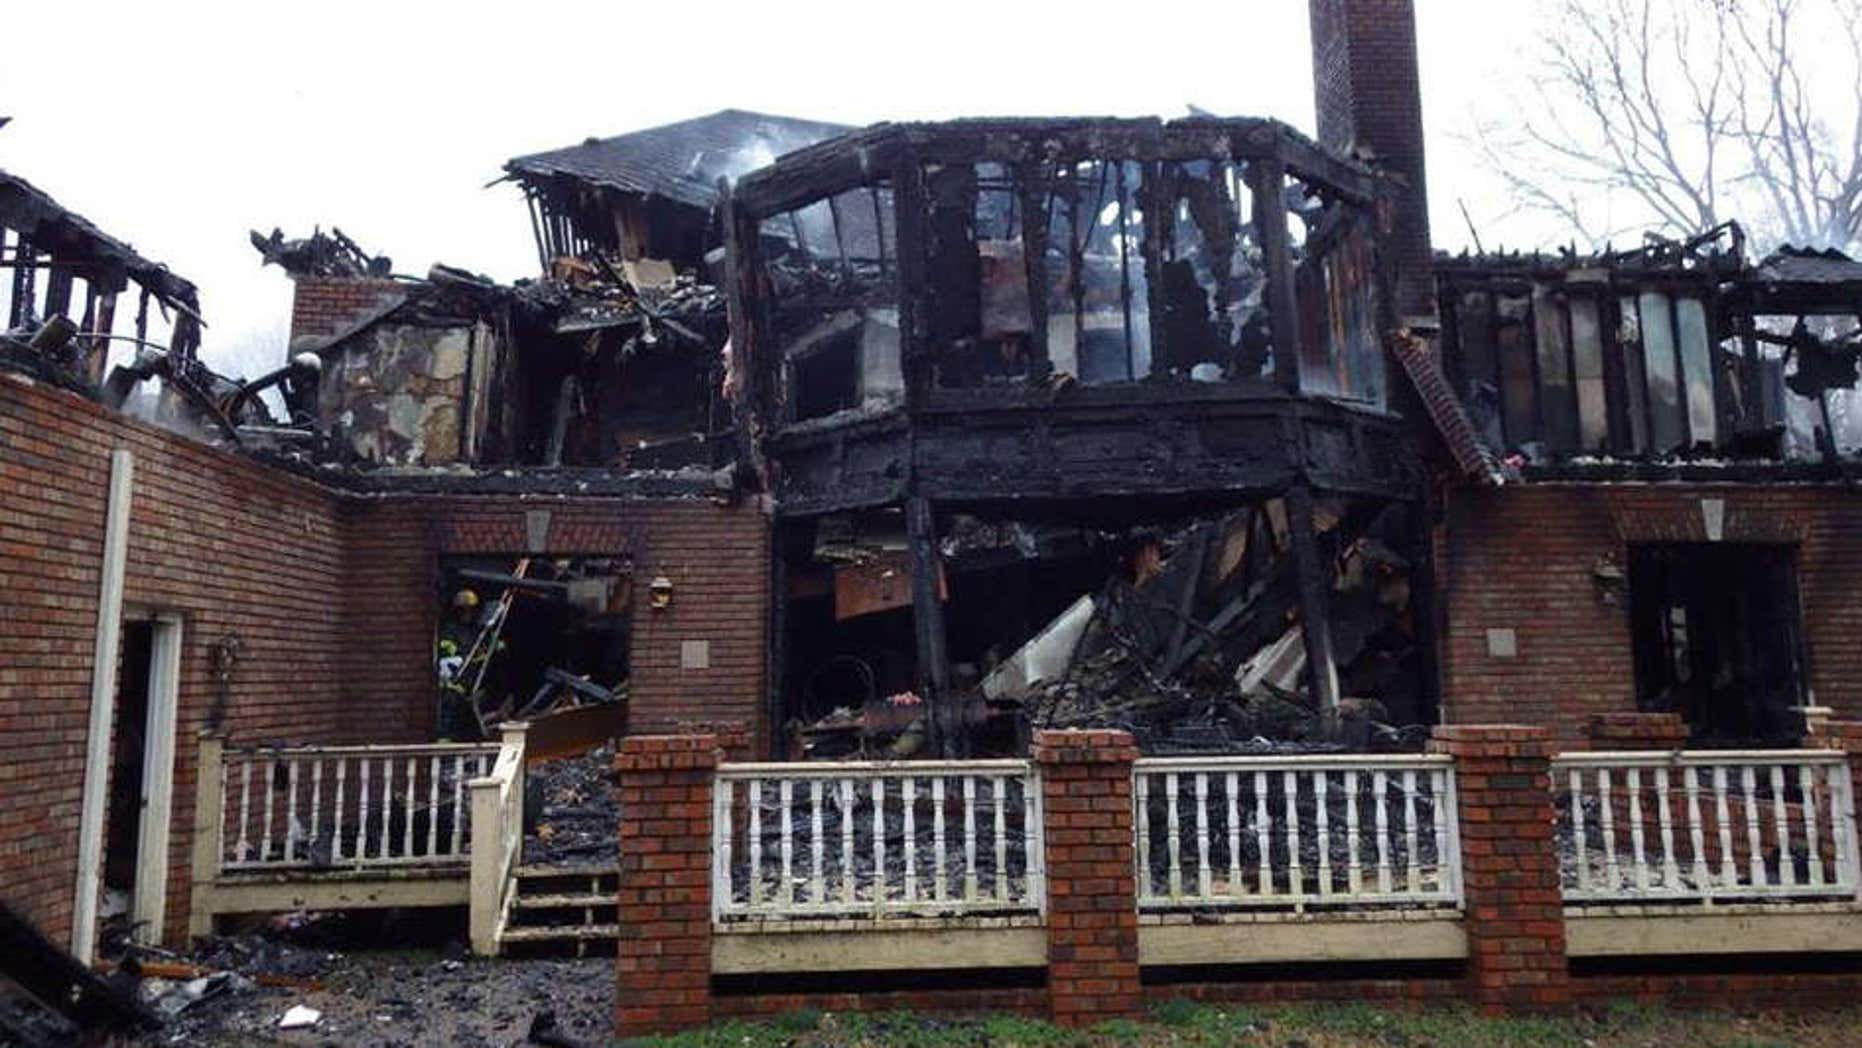 Aftermath of a fire that destroyed a Tennessee home.